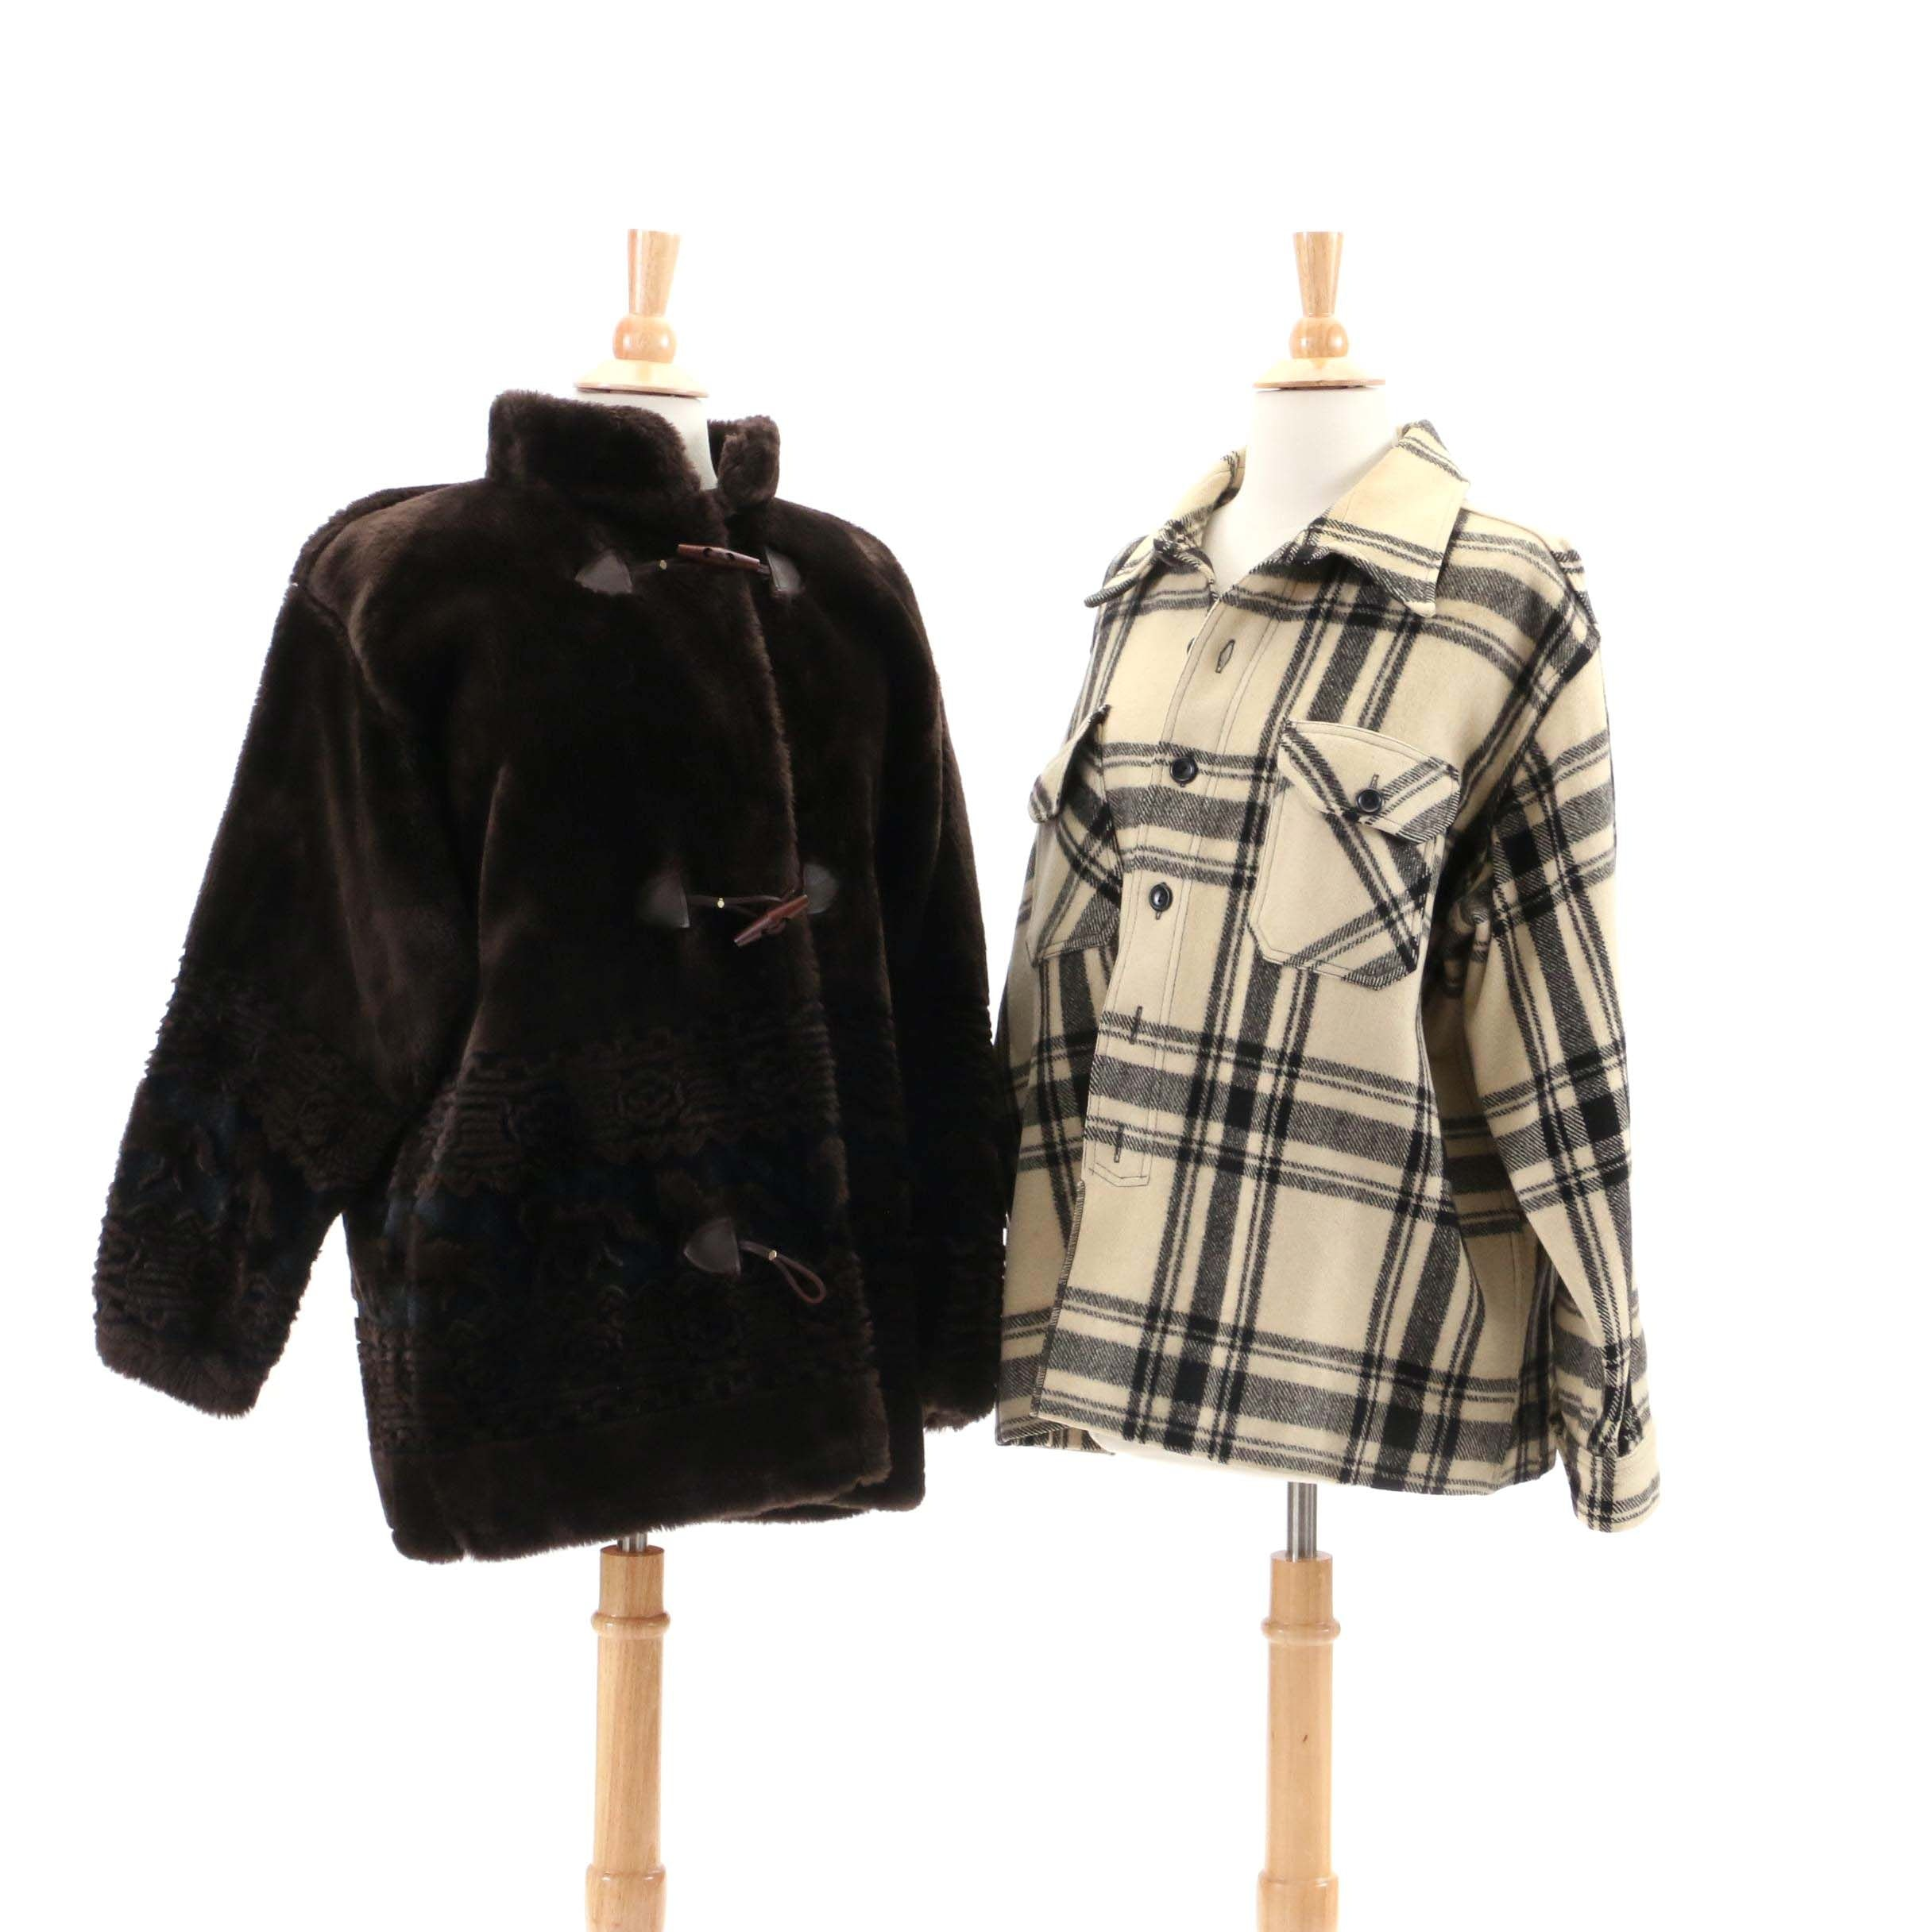 Vintage Bear Ridge Outfitters Faux Fur Coat and Merrill Plaid Wool Overshirt